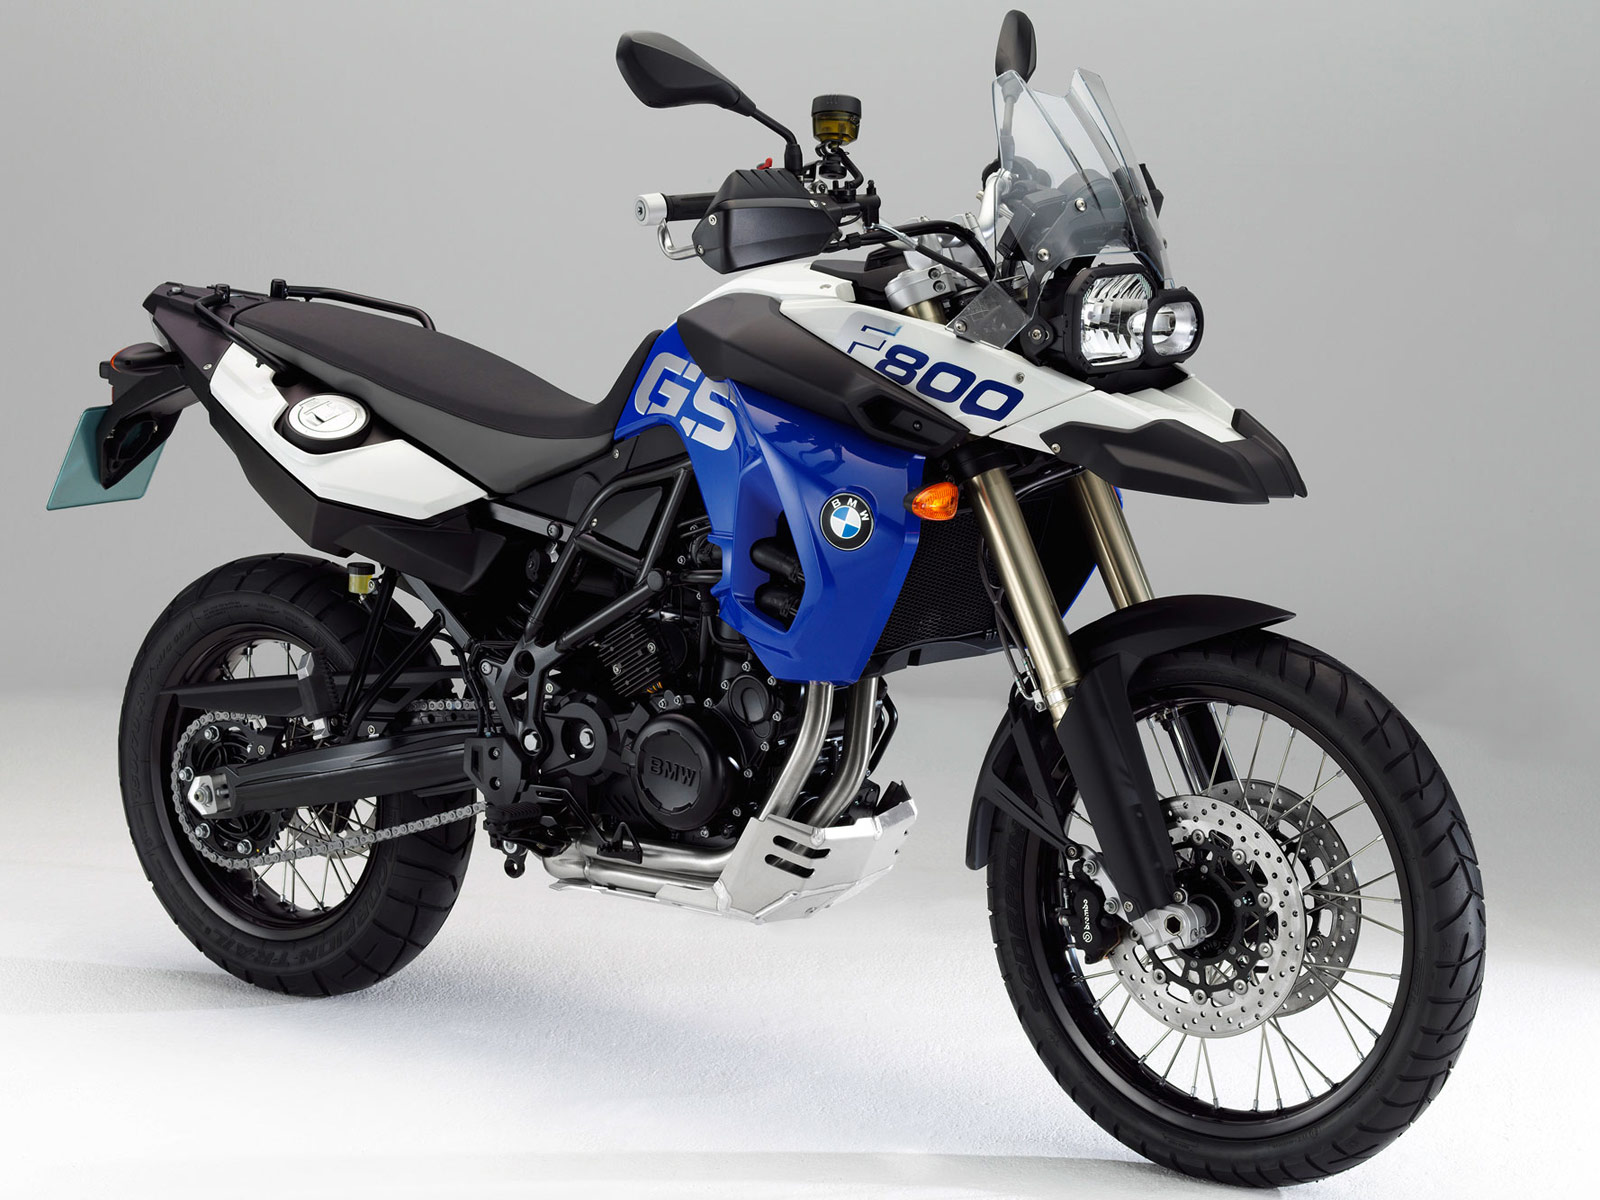 MOTORCYCLE SPECIFICATION: 2013 BMW F800GS Owners manual